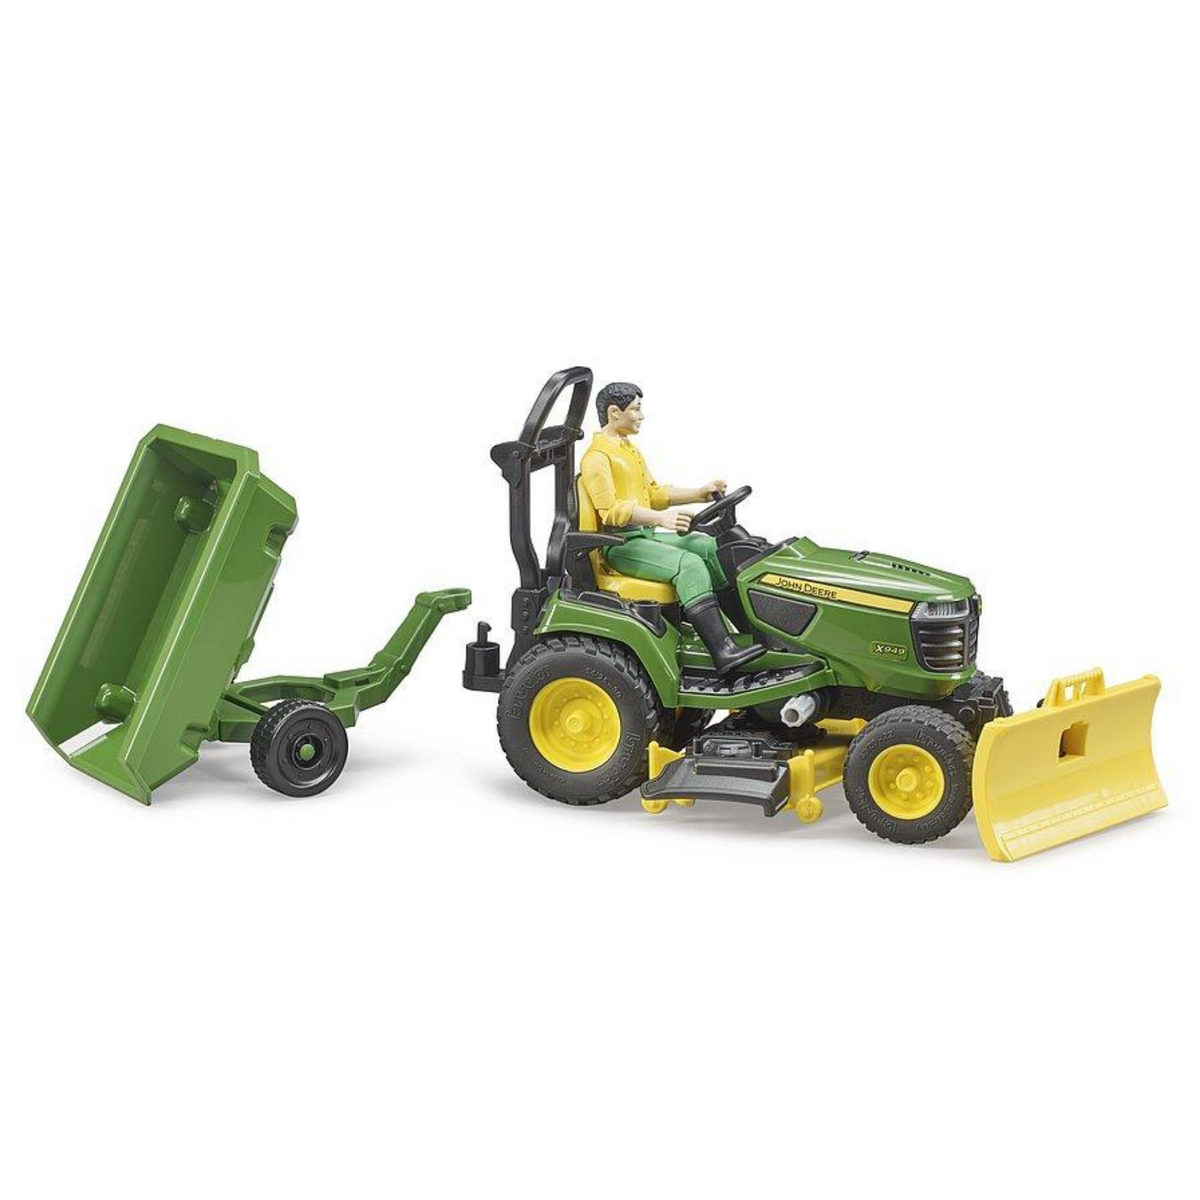 Bruder John Deere Ride on Lawn Mower with Trailer & Man 62104